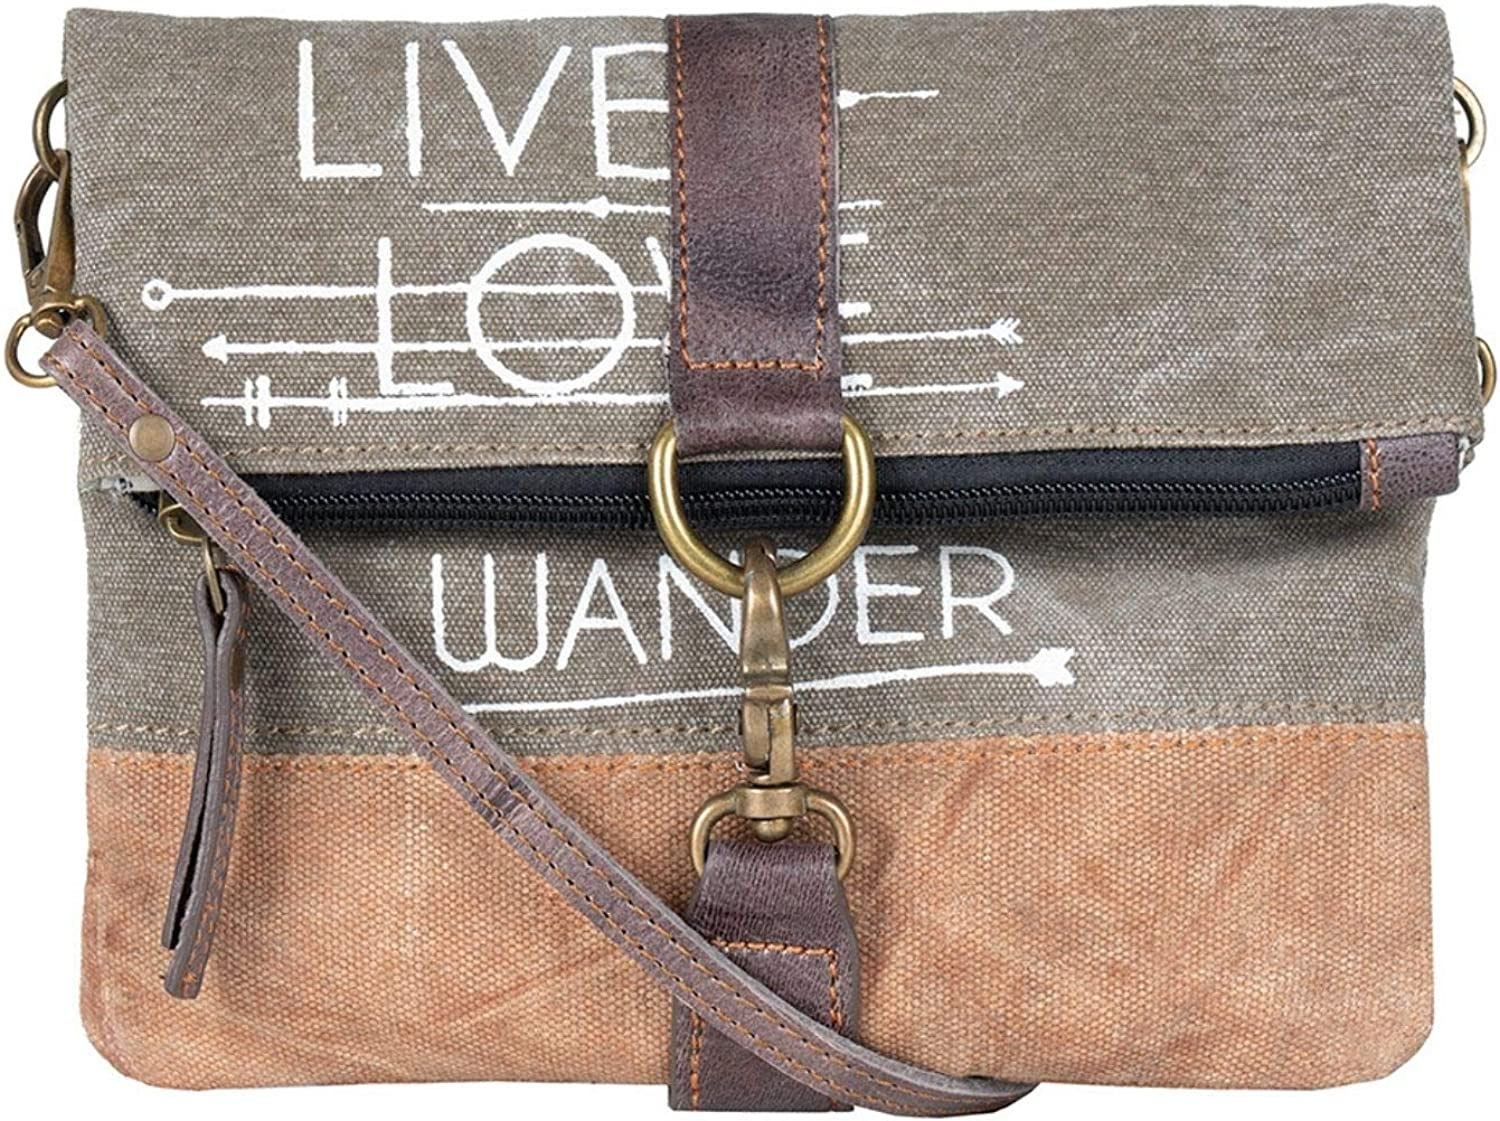 Mona B. Live Love Wander Bag Upcycled Canvas Tote Bag with Vegan Leather Trim